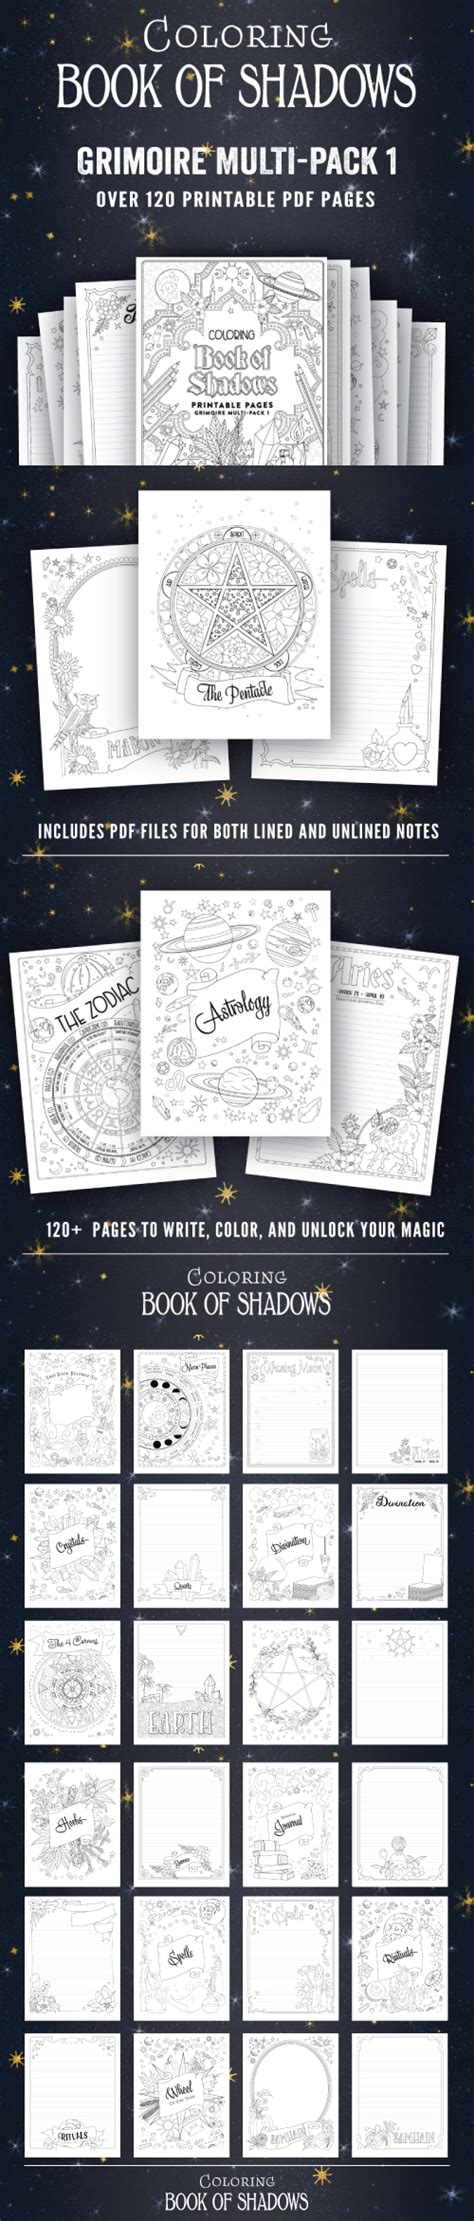 book pdf in printable pages for your book of shadows coloring book